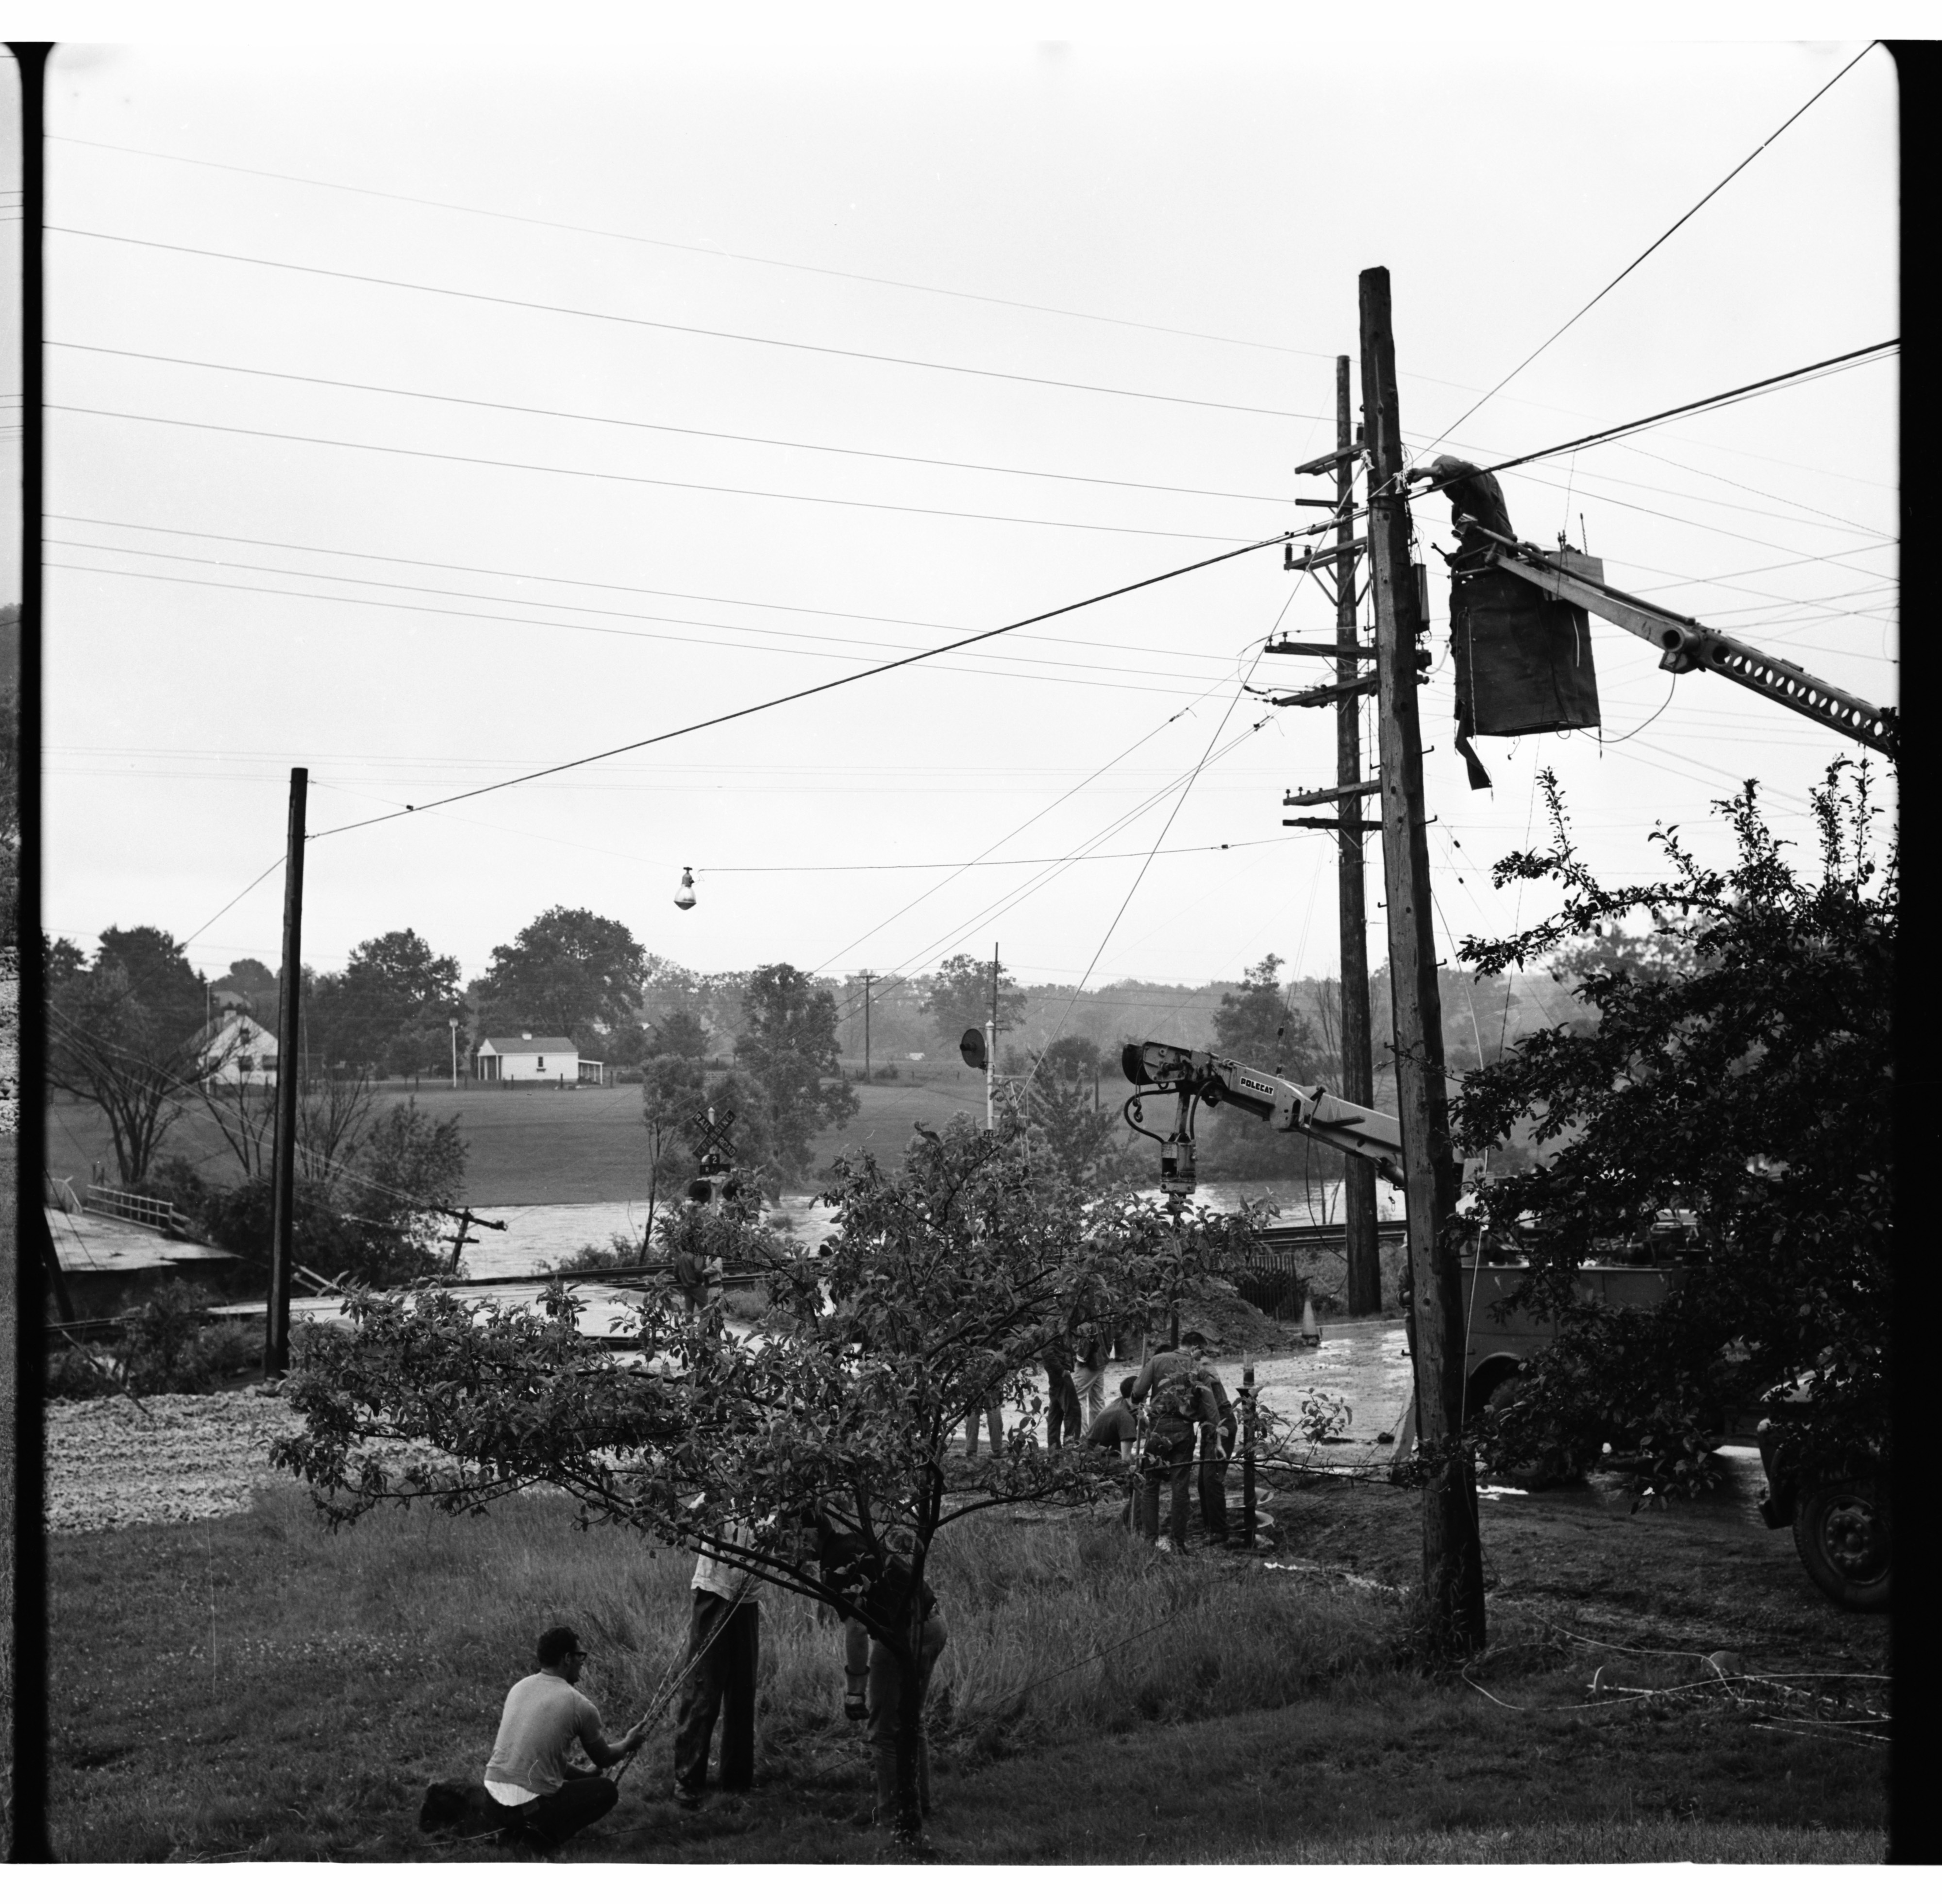 Fixing Wires, June 1968 Flood image